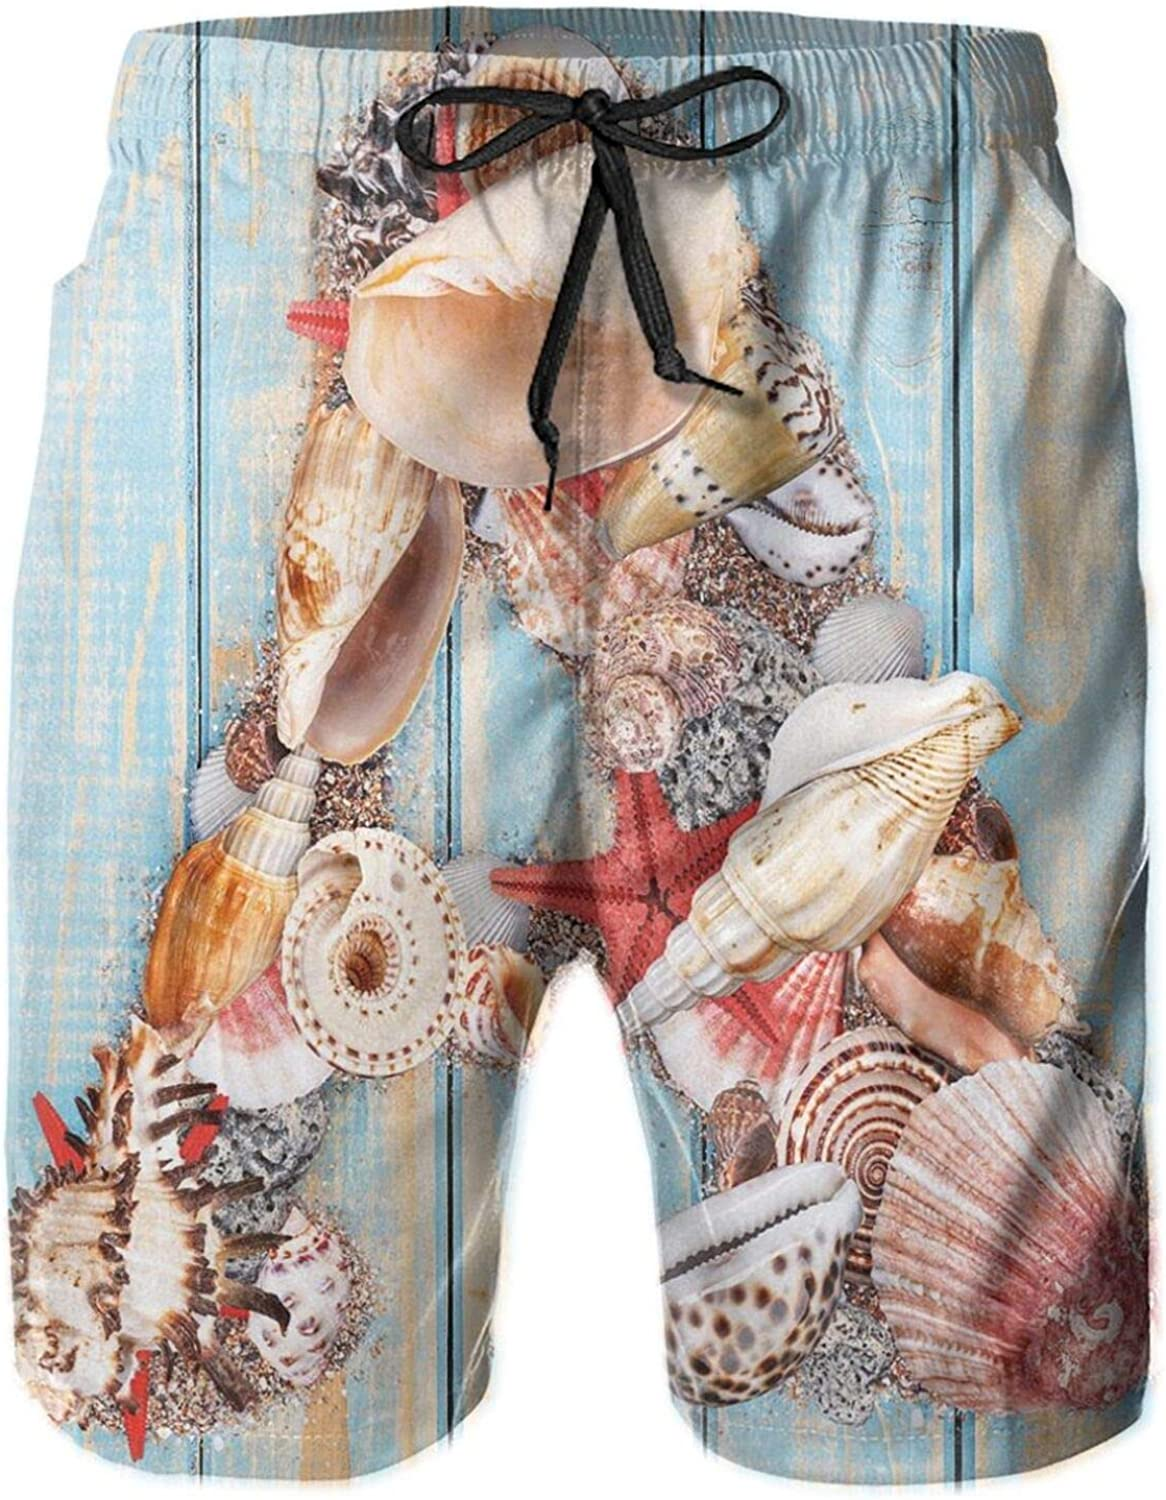 Letter A with Seashells On Pale Wooden Board Invertebrates Animal Drawstring Waist Beach Shorts for Men Swim Trucks Board Shorts with Mesh Lining,L